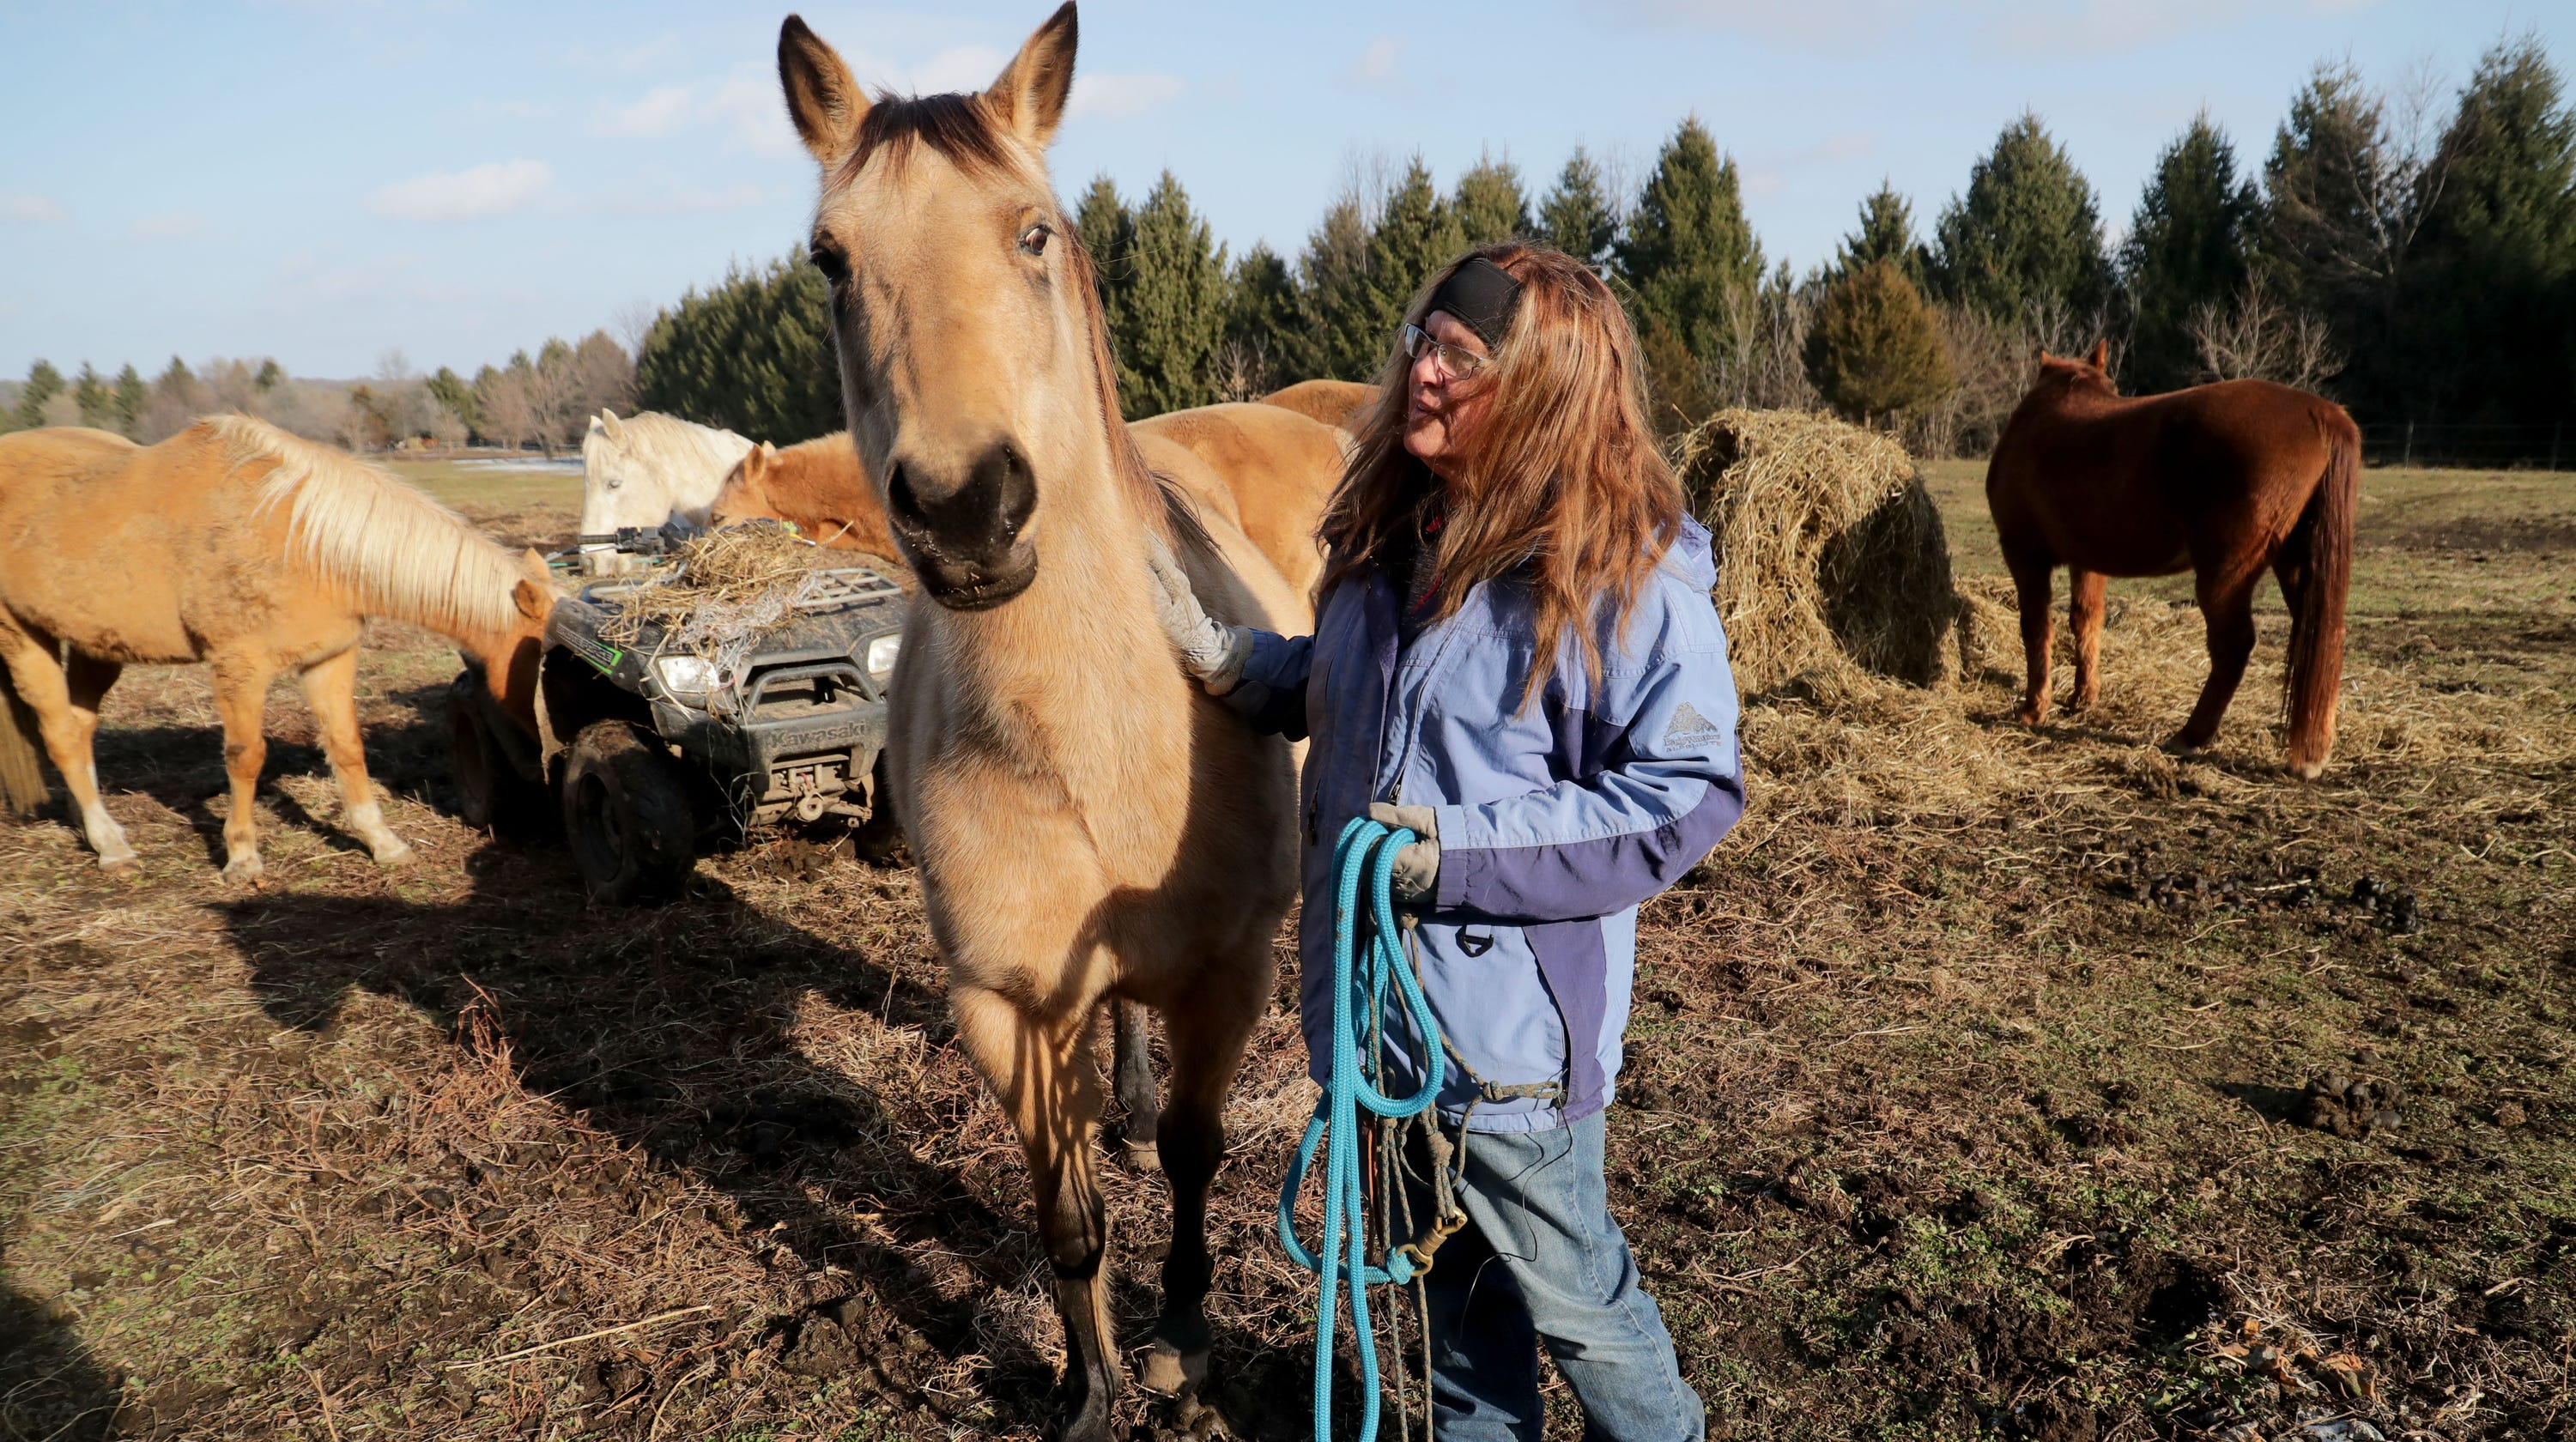 Over capacity, equine rescue center desperate for homes for 23 horses